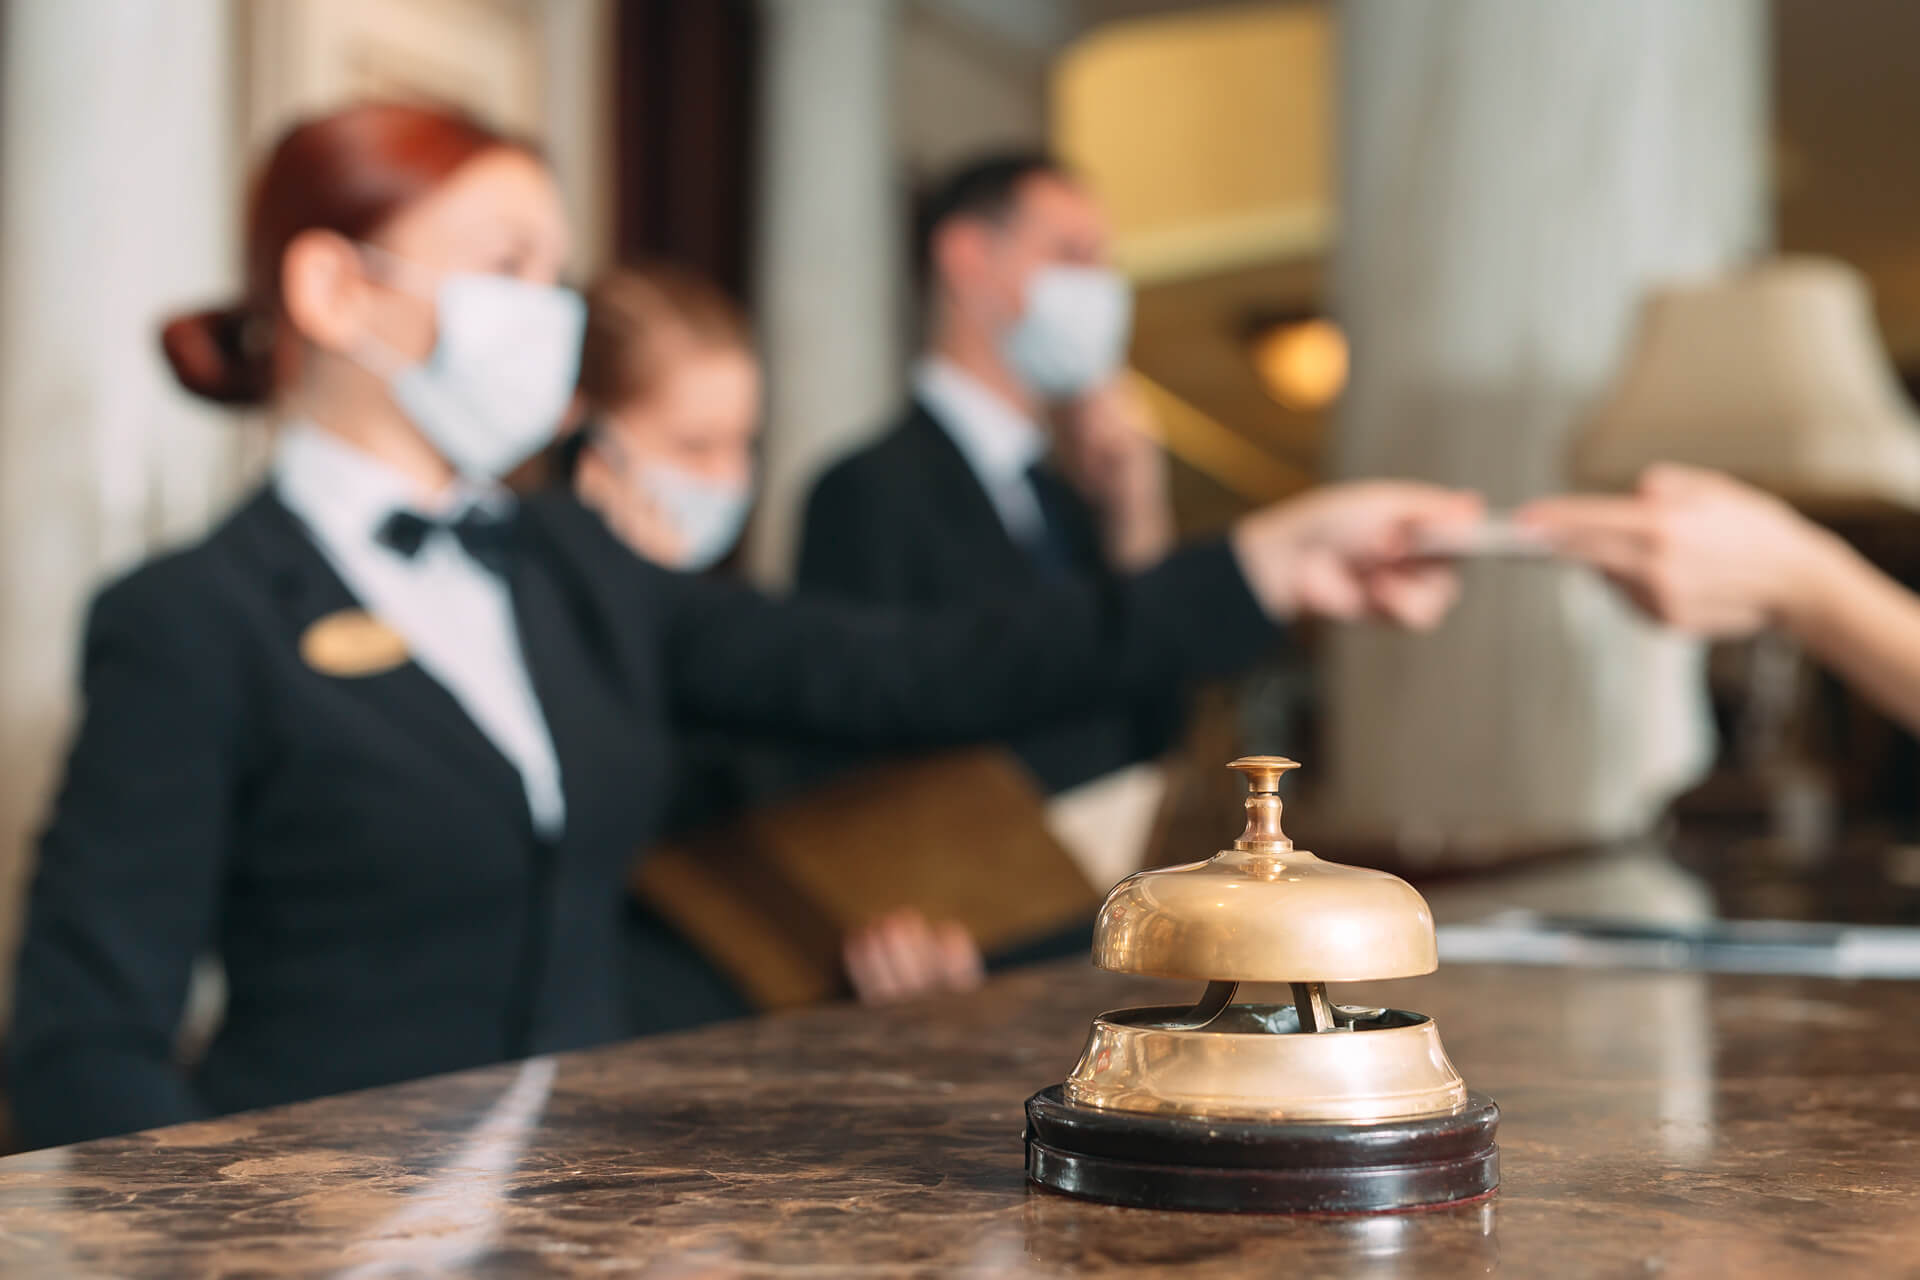 How Hotels Are Dealing with COVID-19